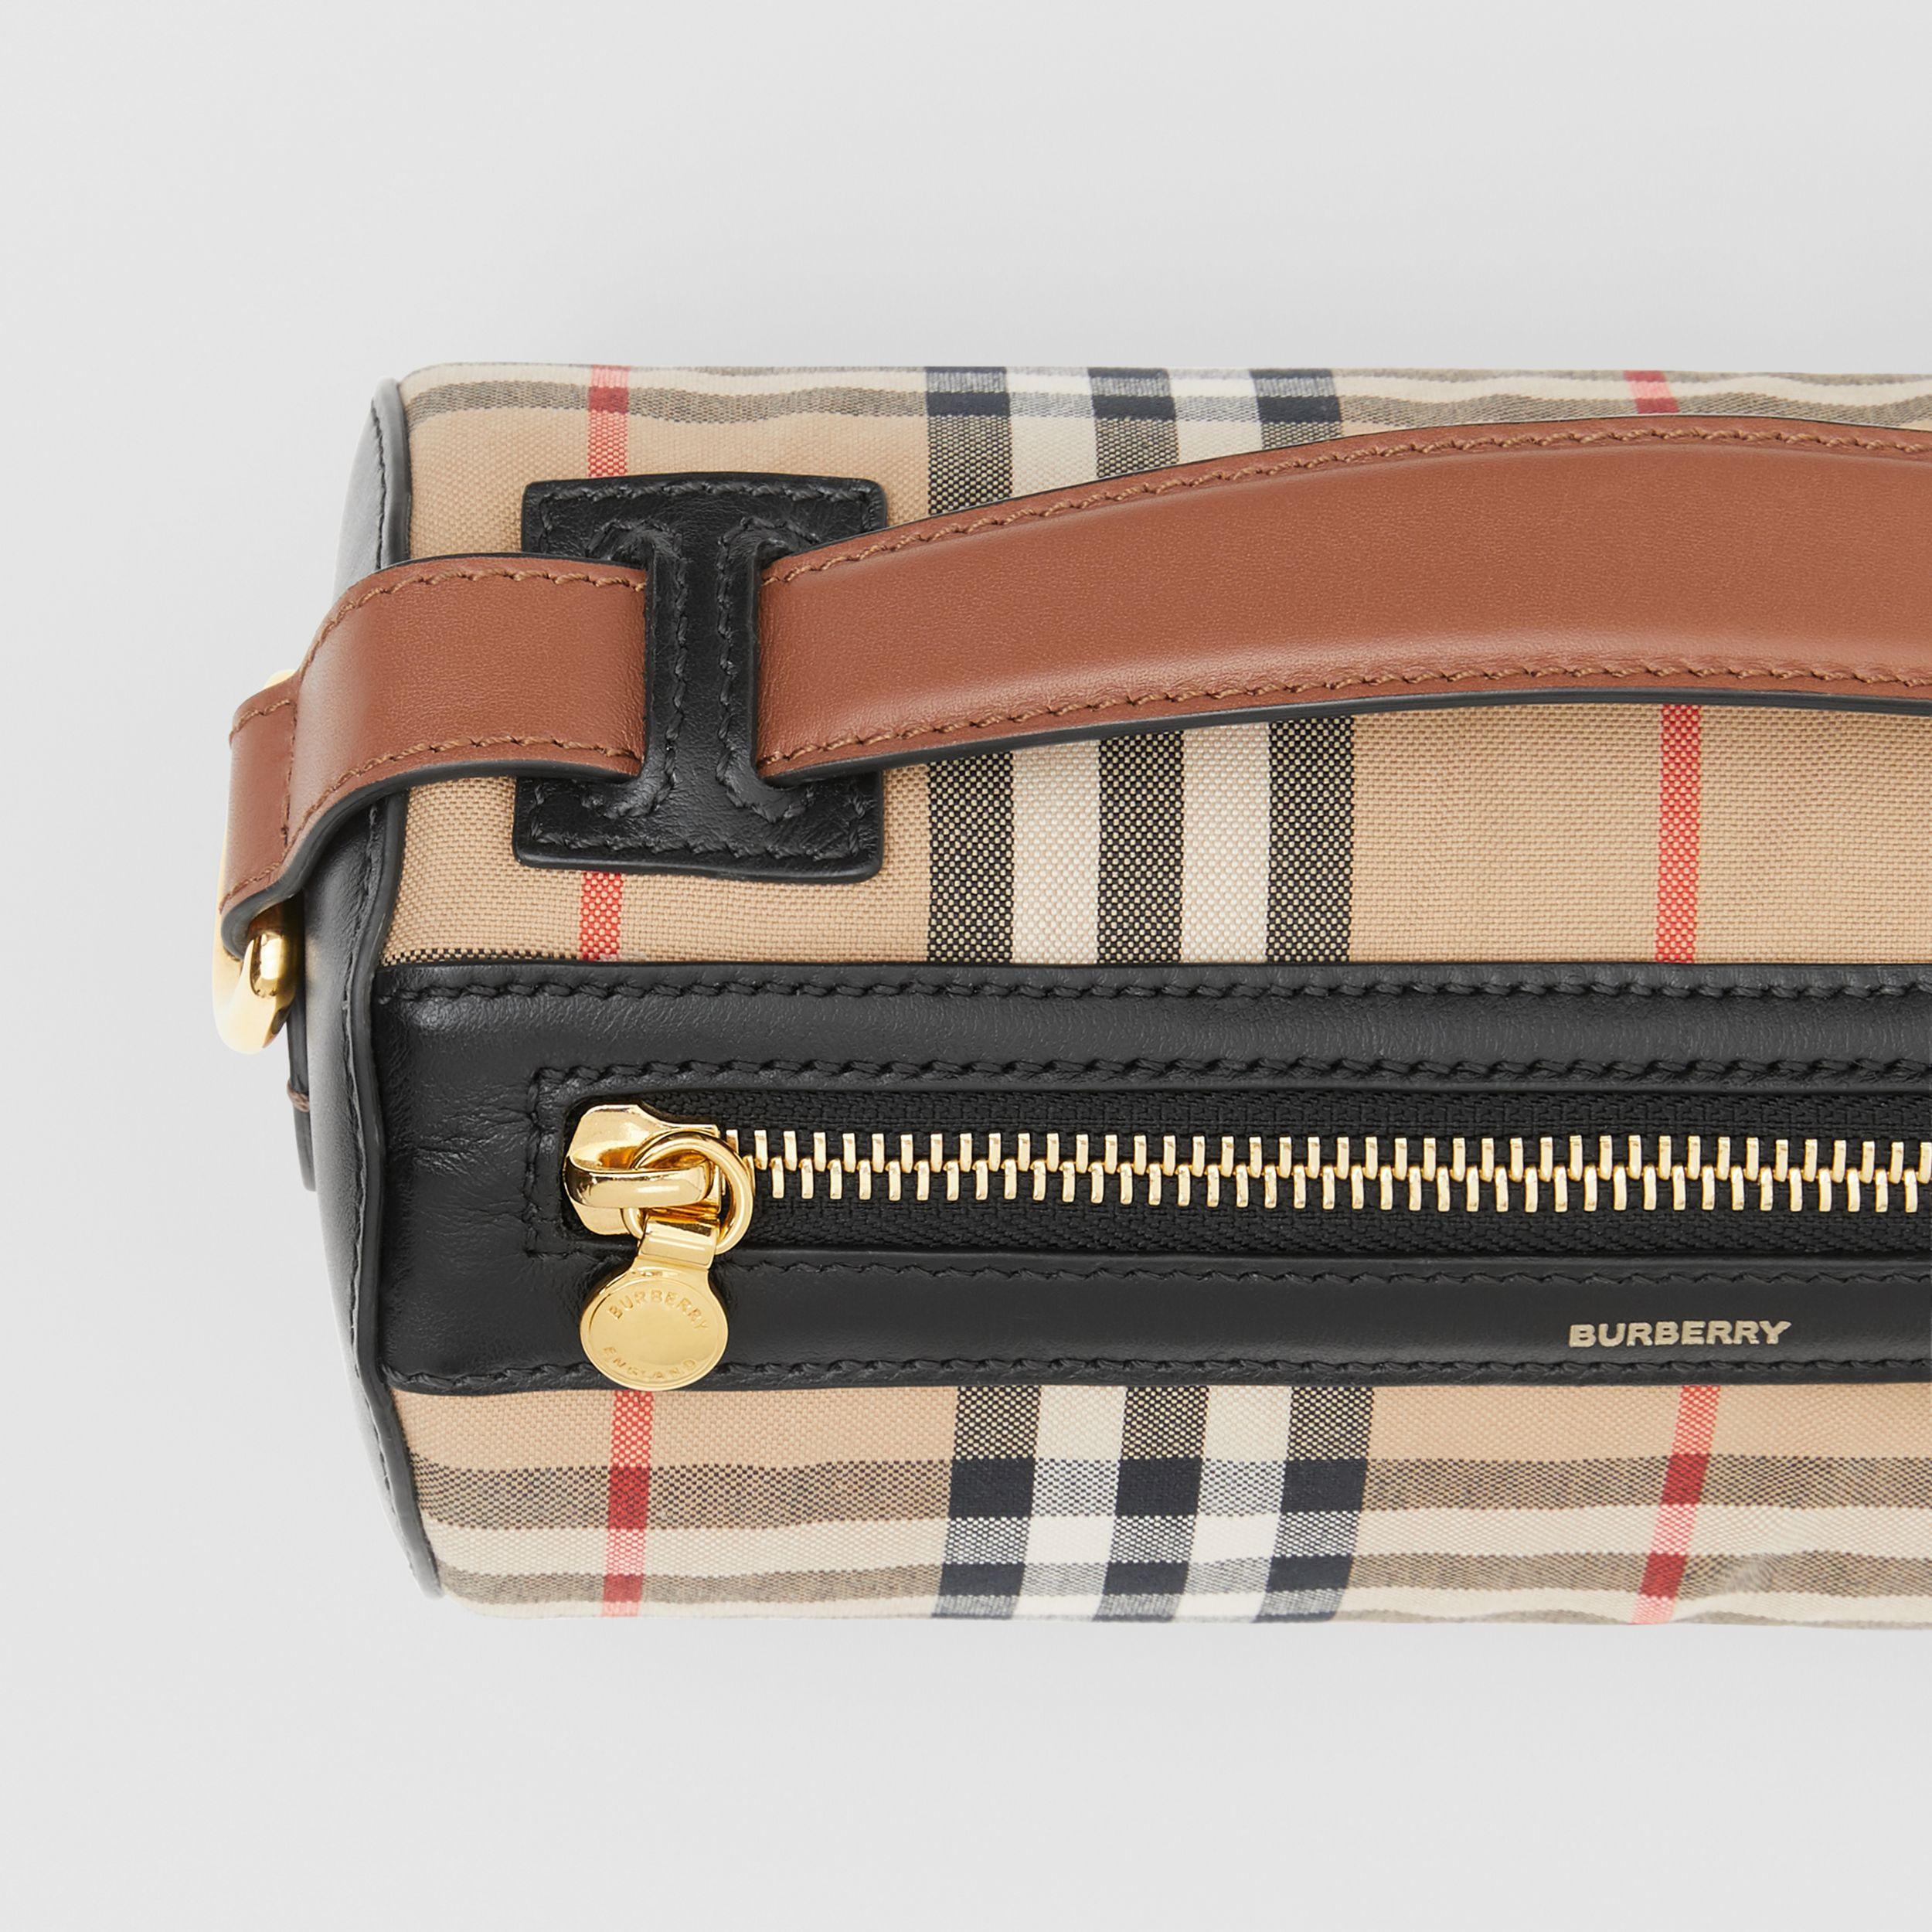 Borsa The Barrel con motivo Vintage check e finiture in pelle (Beige Archivio/nero) - Donna | Burberry - 2